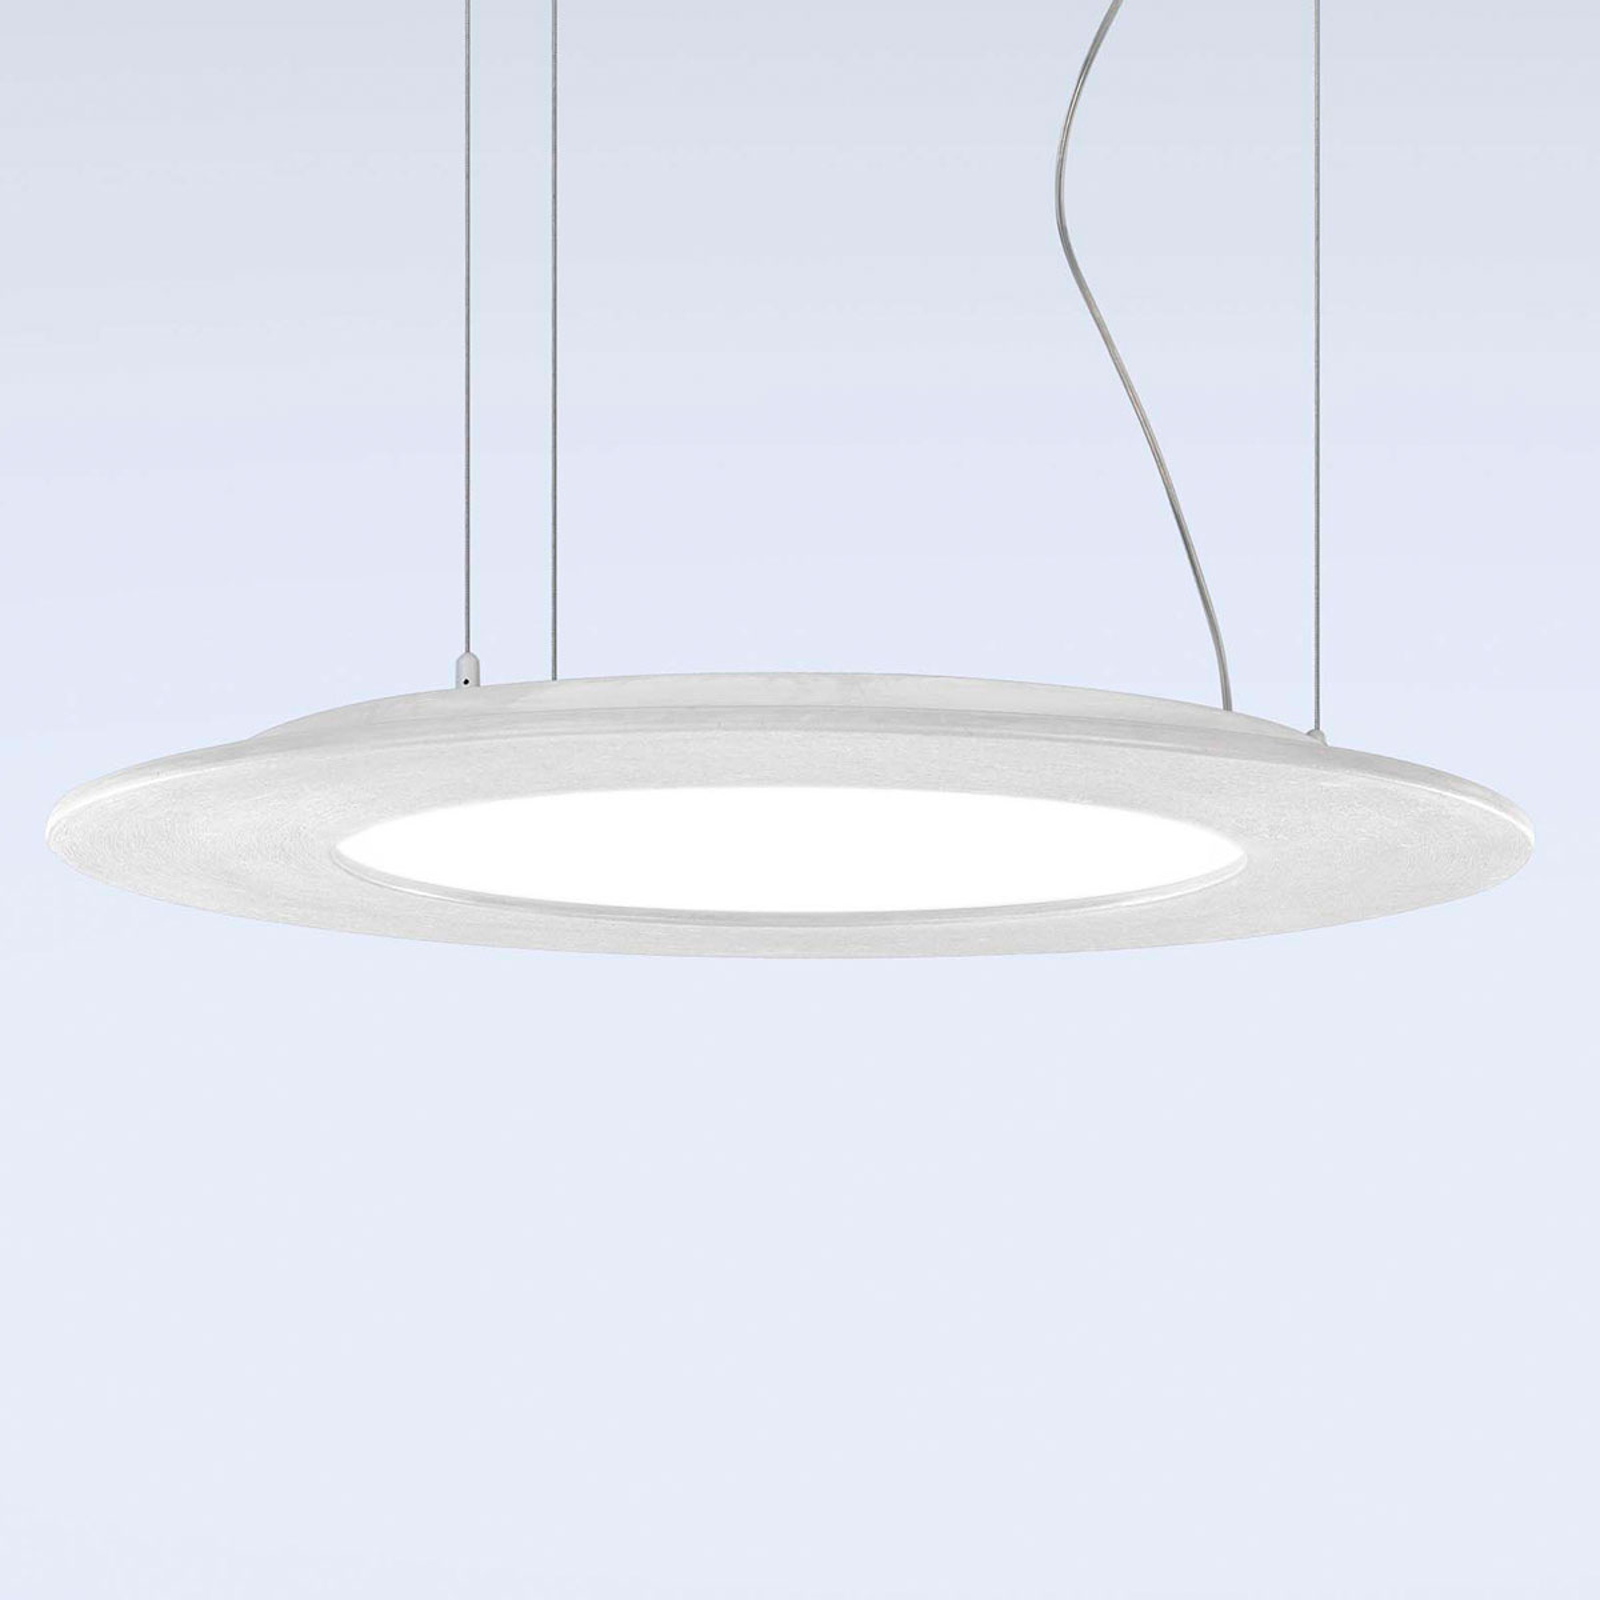 LED hanglamp Materica schijf wit